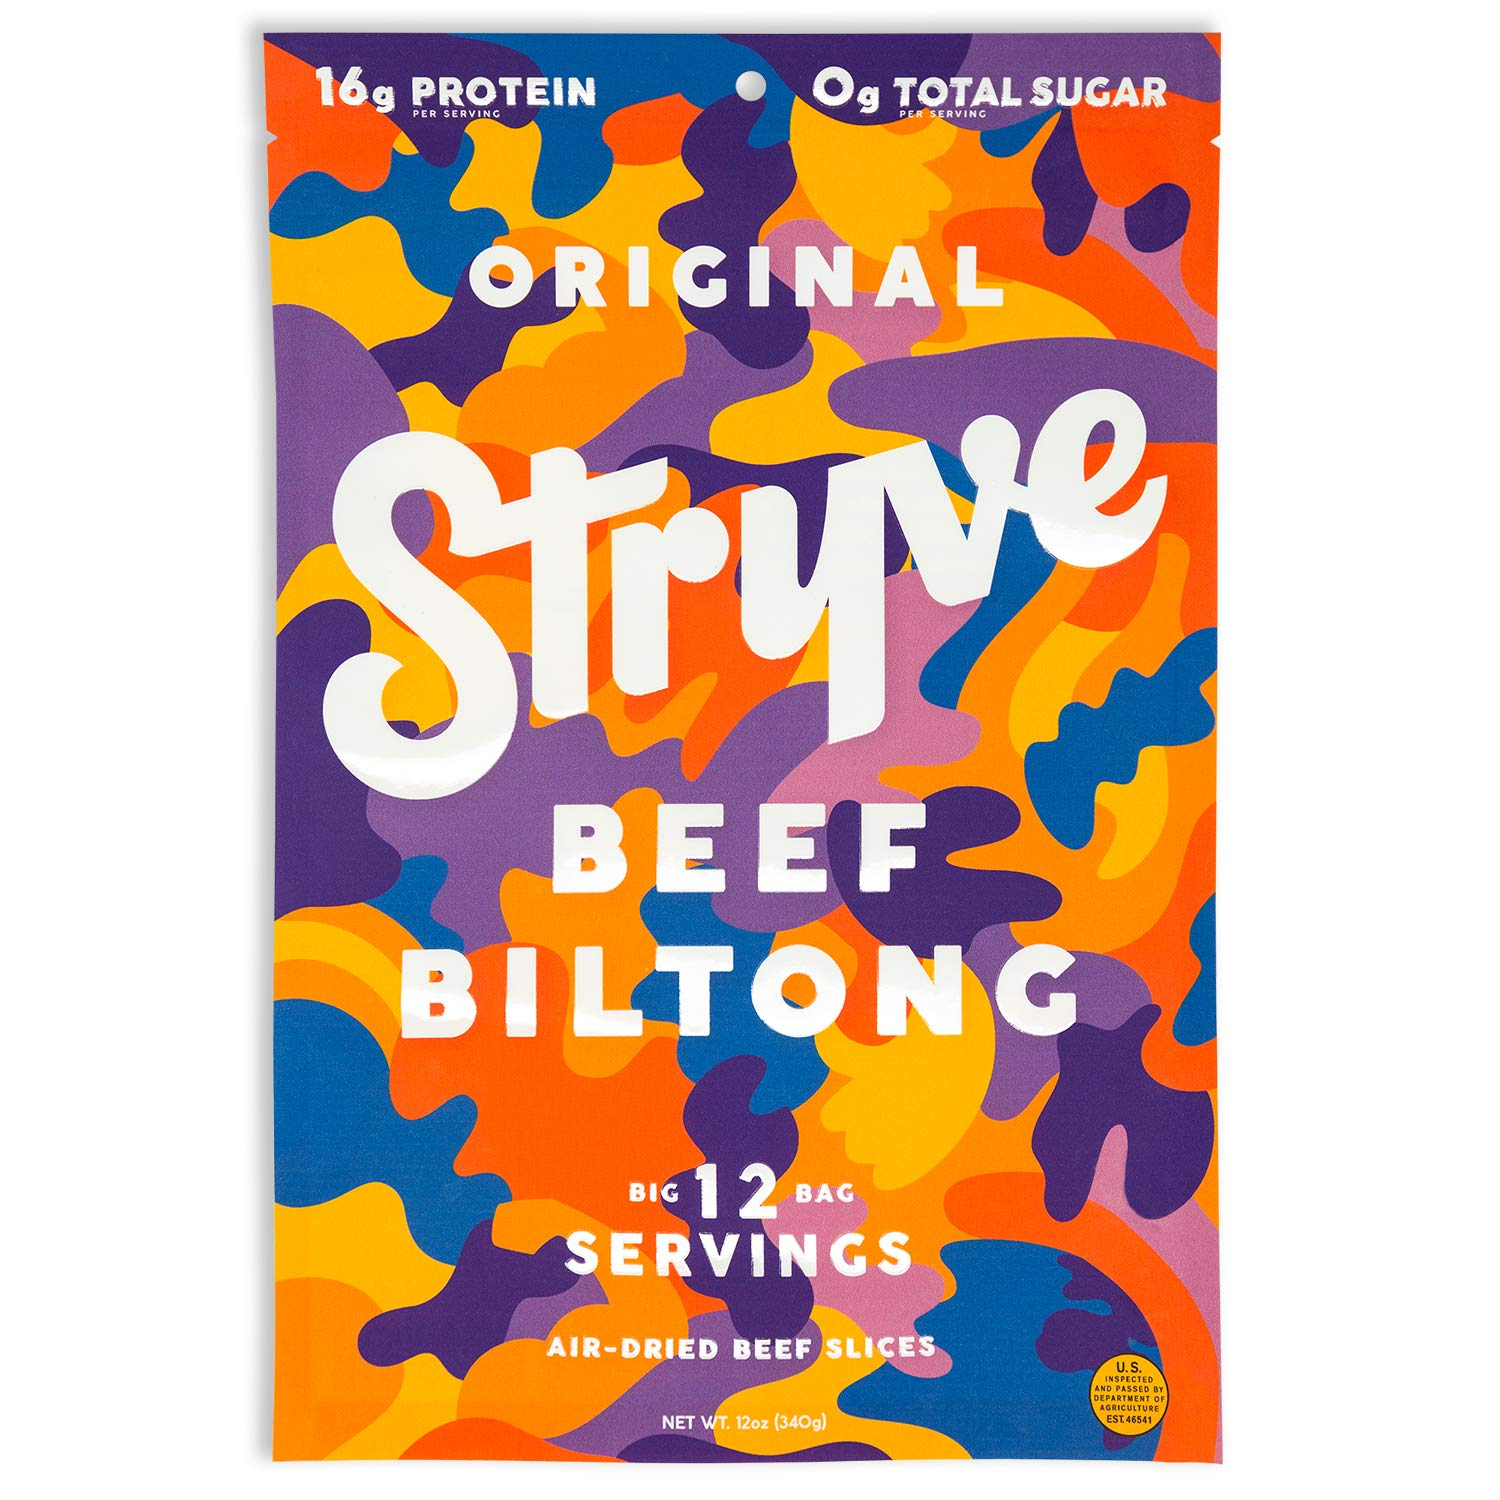 Stryve Biltong, Beef Jerky without the Junky. 16g Protein, Sugar Free, No Carbs, Gluten Free, No Nitrates, No MSG, No Preservatives. Keto and Paleo Friendly. Original, 12oz